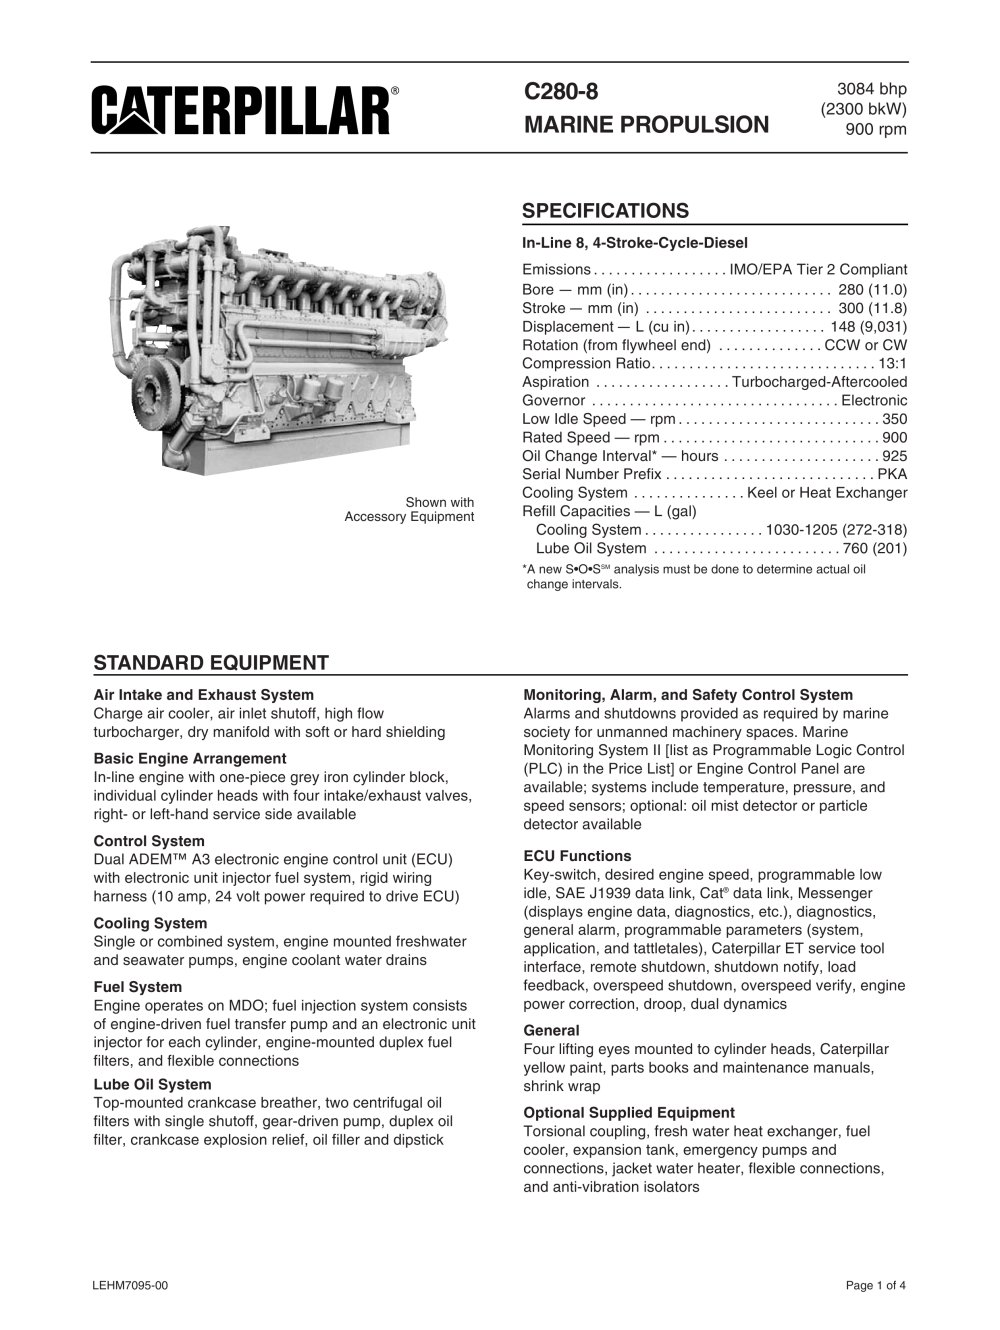 3s8670 Caterpillar Wiring Harness Library Shrink Wrapping Cat C280 8 Spec Sheets Marine Power Systems Pdf Wire Assembly